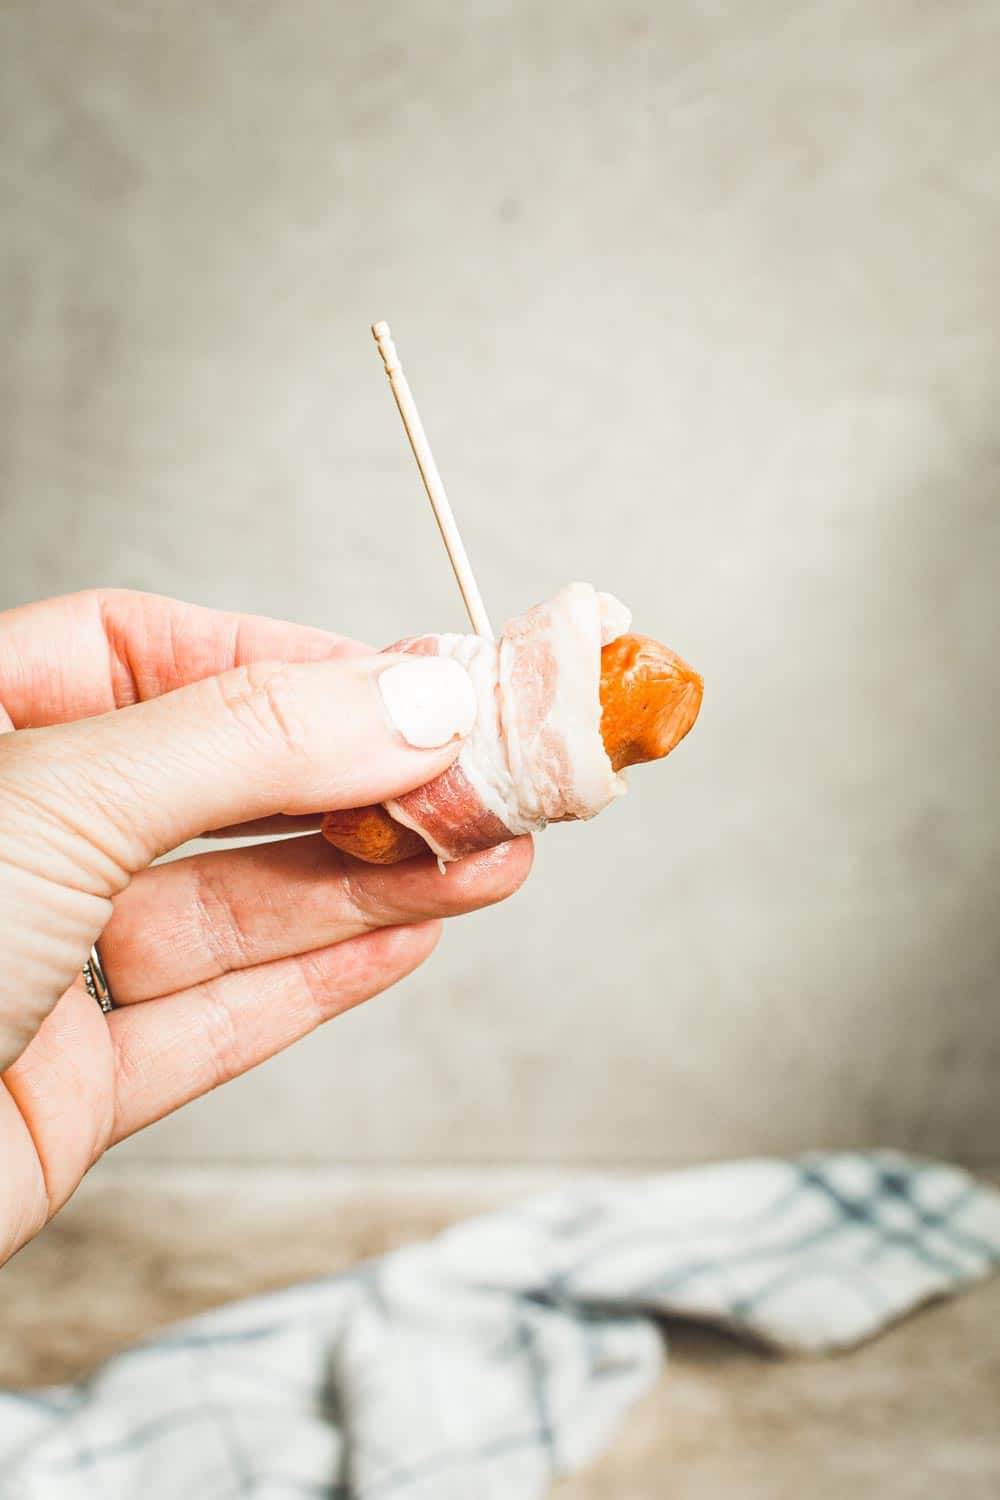 Hand holding a bacon wrapped little smokie.